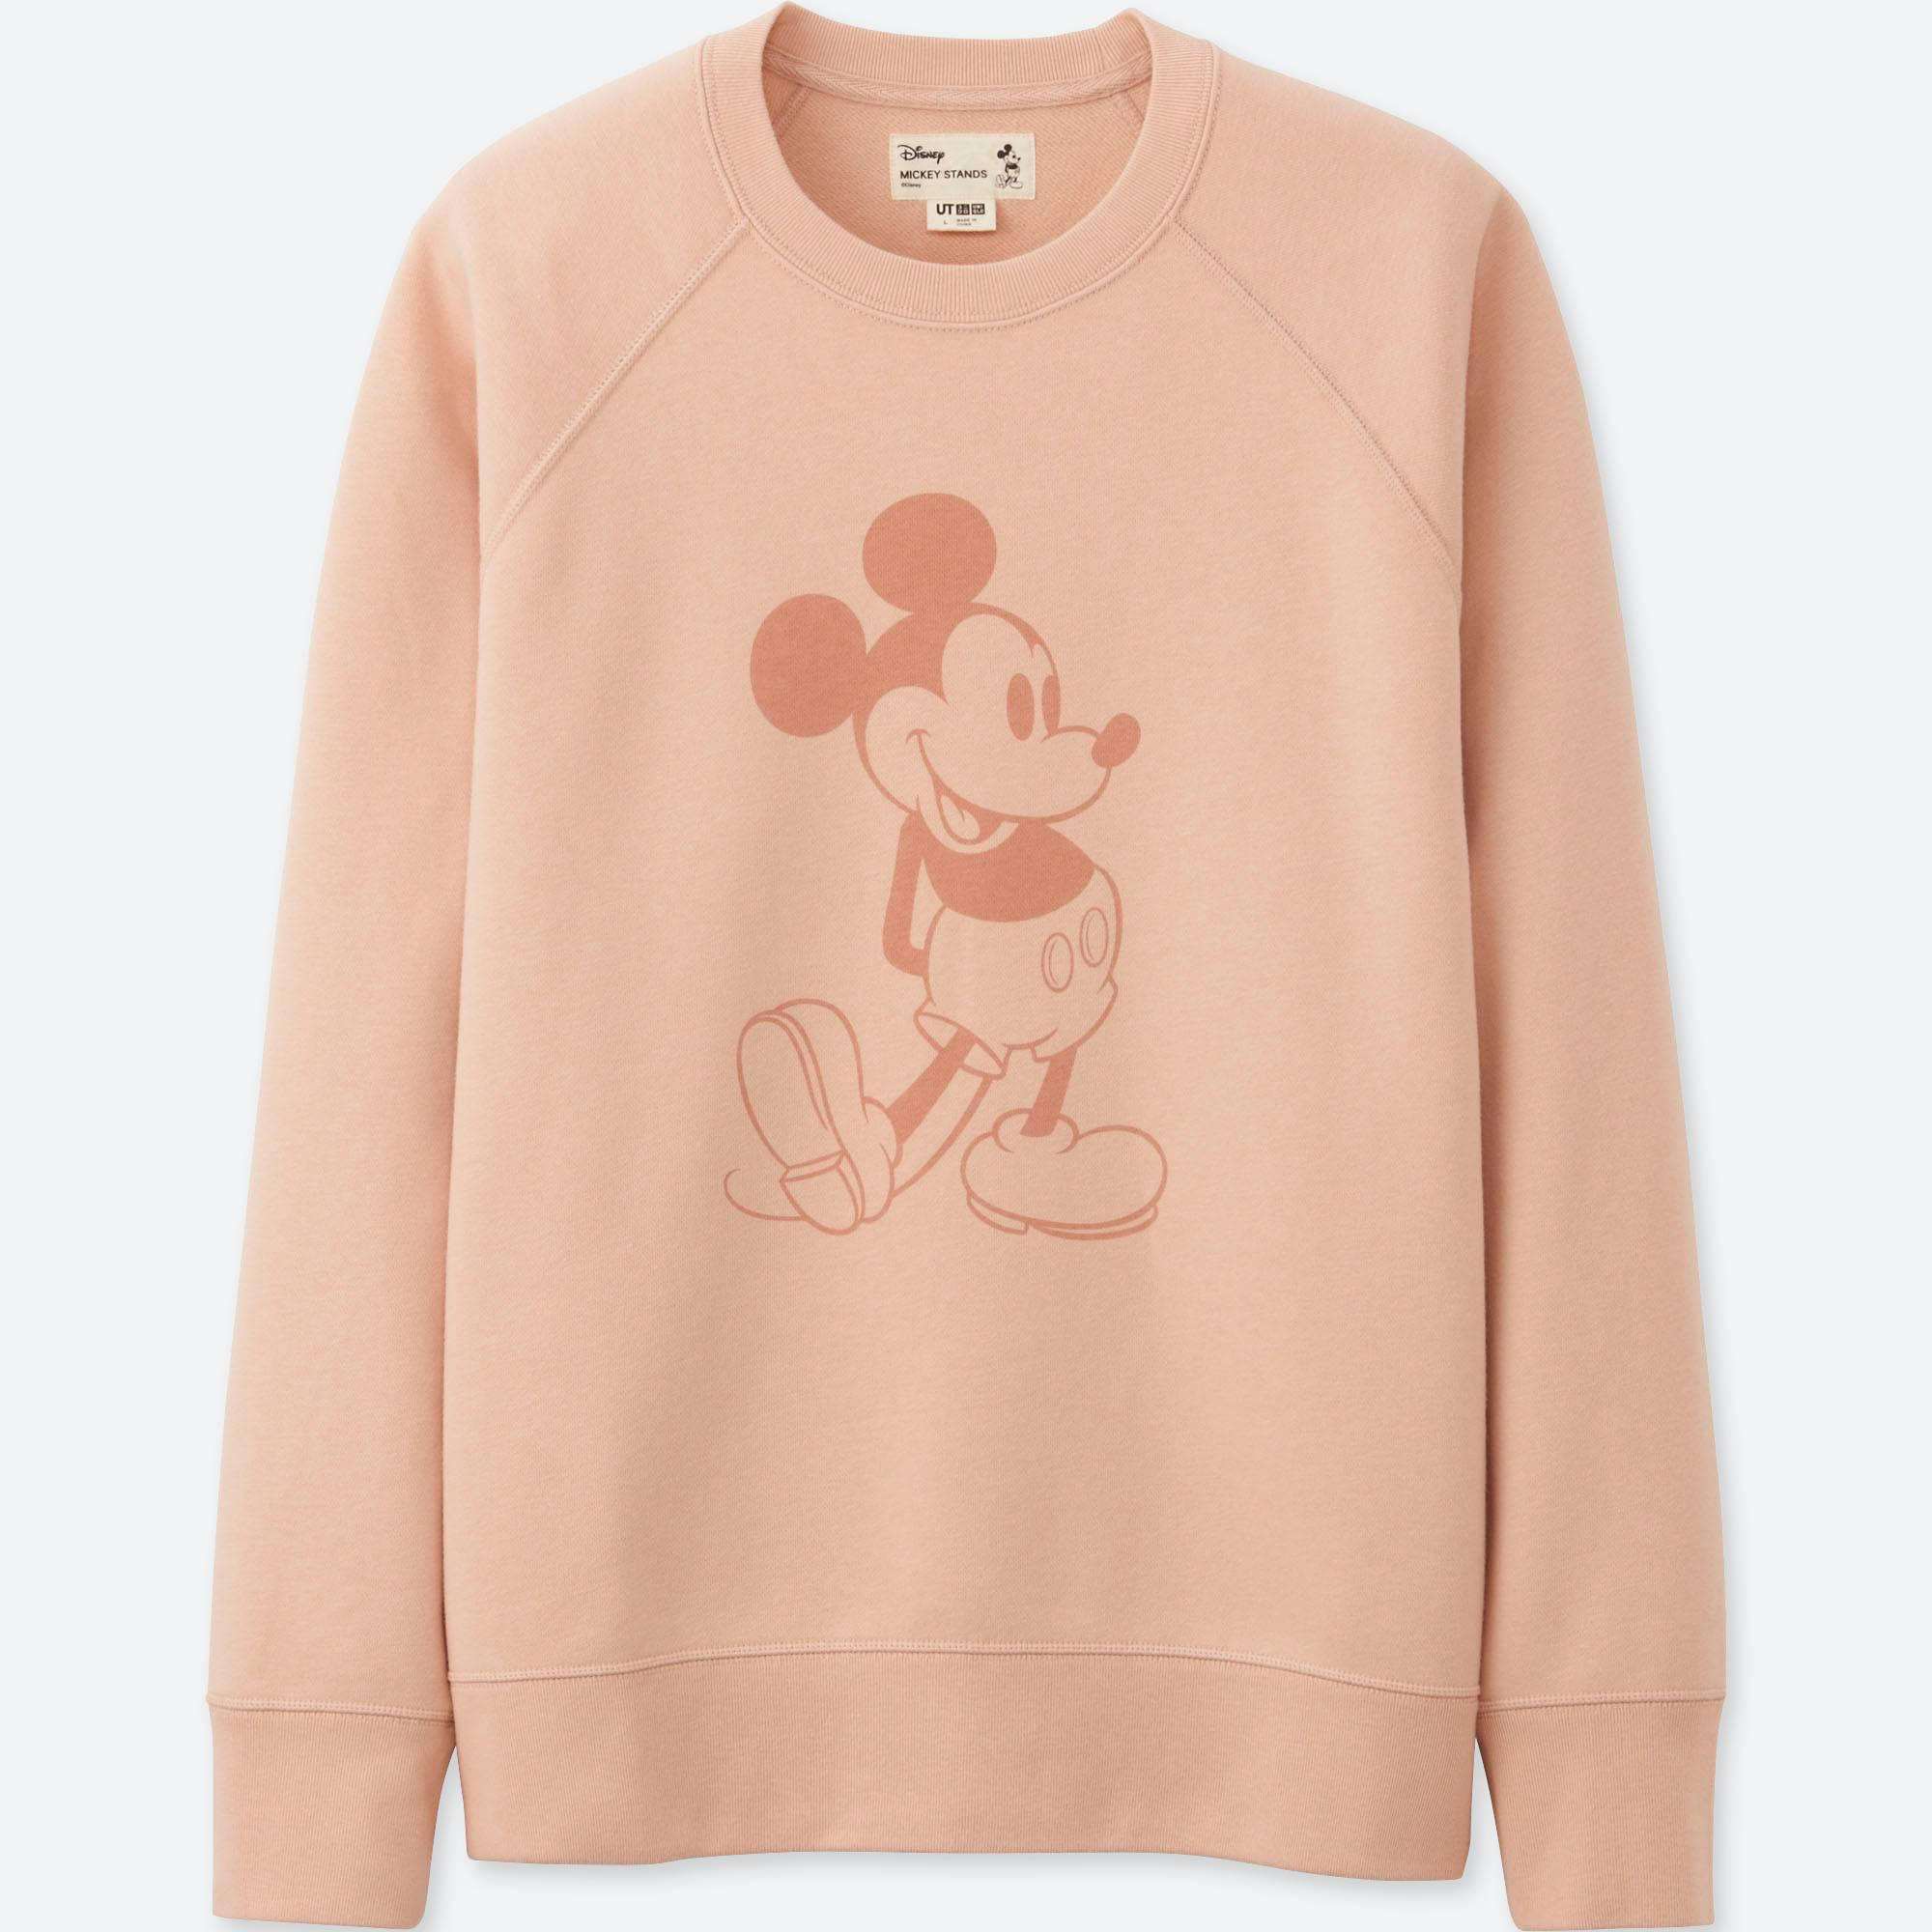 2259c6b33f8 Lyst - Uniqlo Men Mickey Stands Sweatshirt in Pink